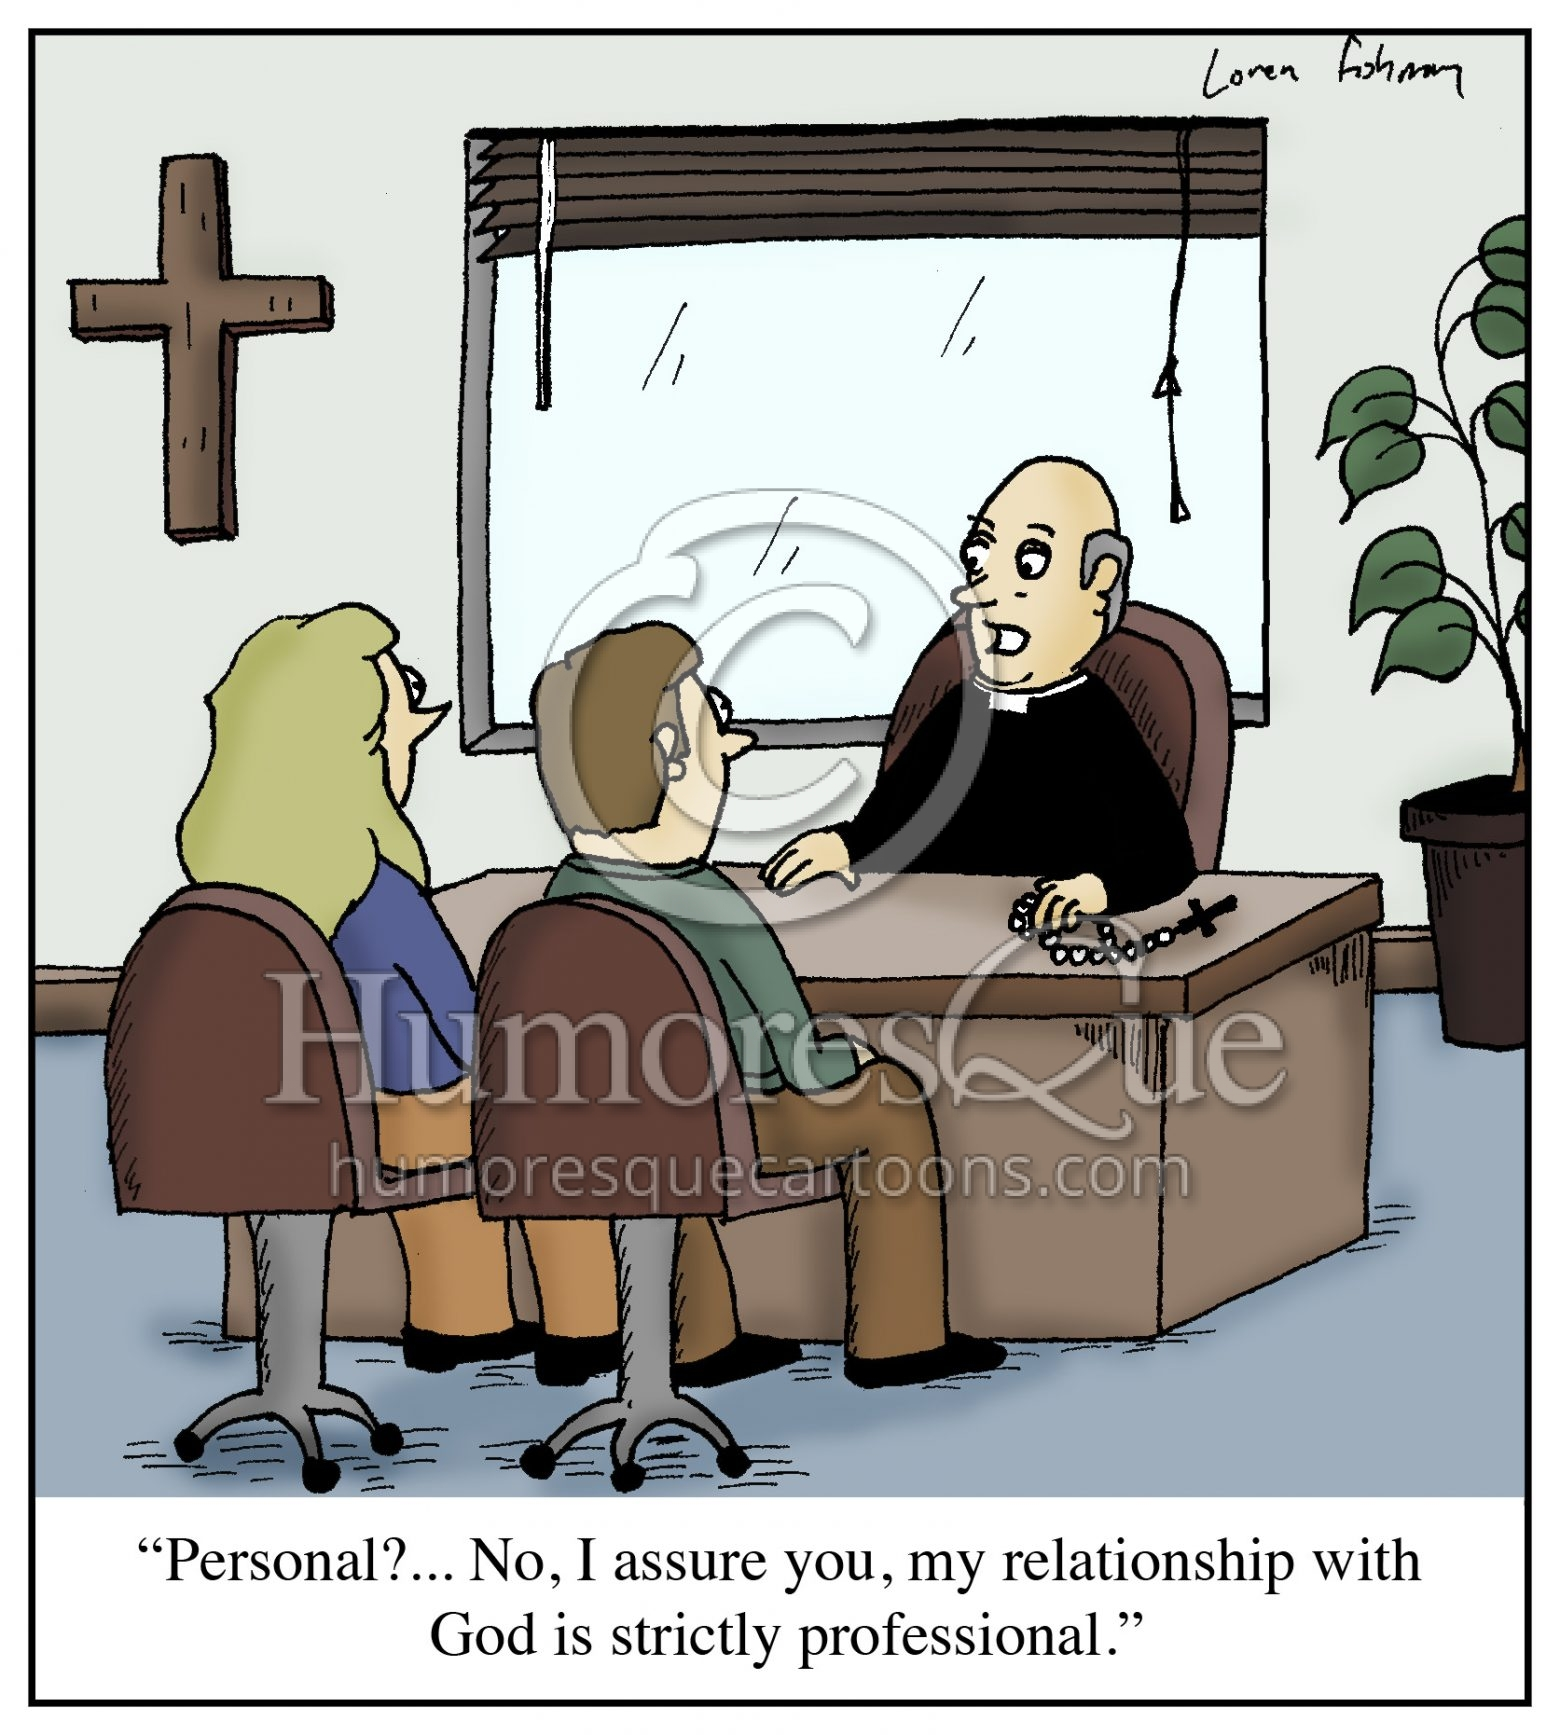 personal or professional relationship with god cartoon